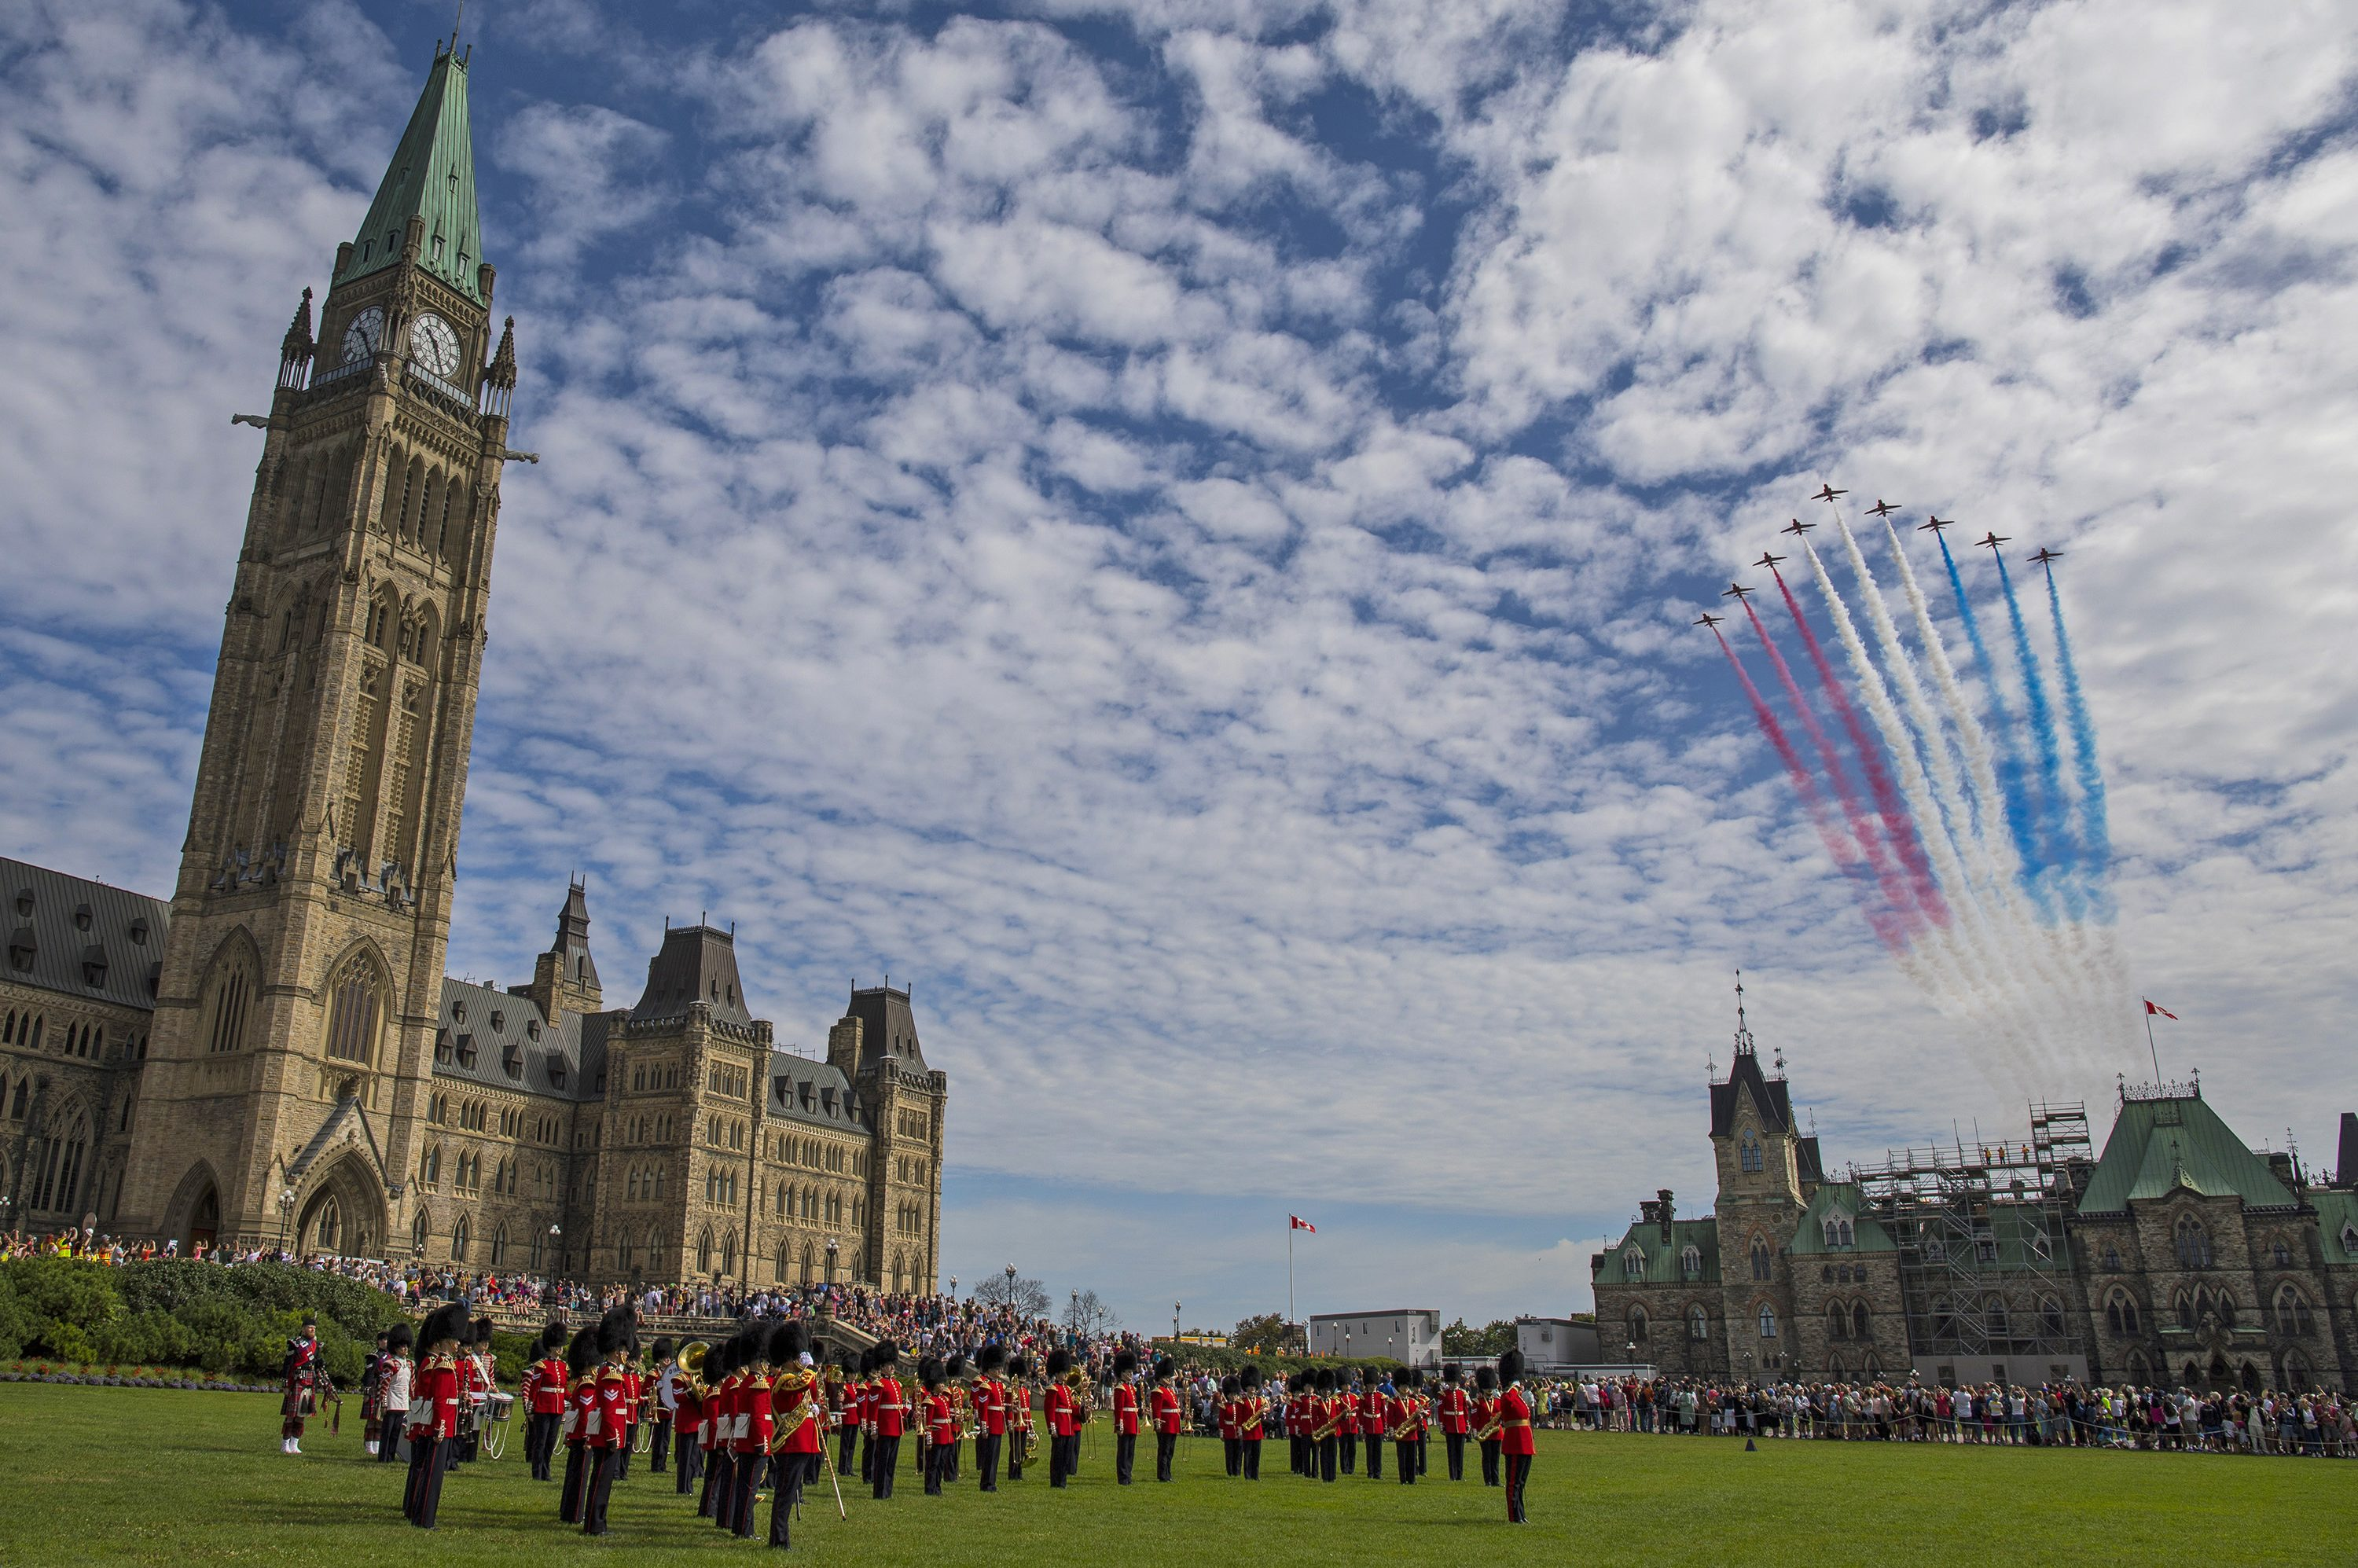 The Red Arrows fly in formation over the peace tower and a military parade as they change the guard in Ottawa, leaving a red white and blue jet trail behind them